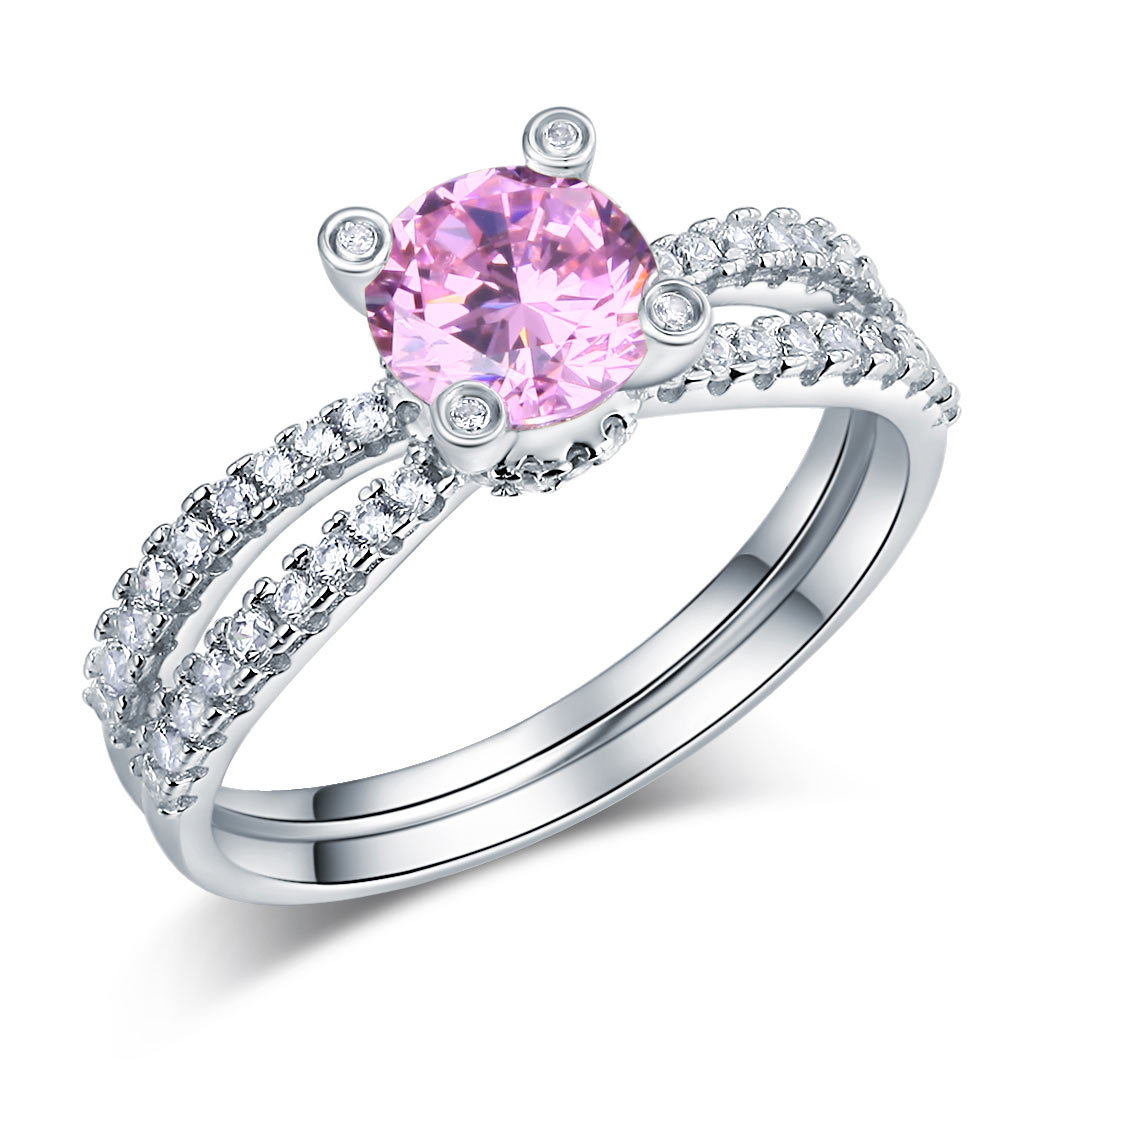 925 Sterling Silver Engagement Ring 1.25 Carat Fancy Pink Lab Created Diamond